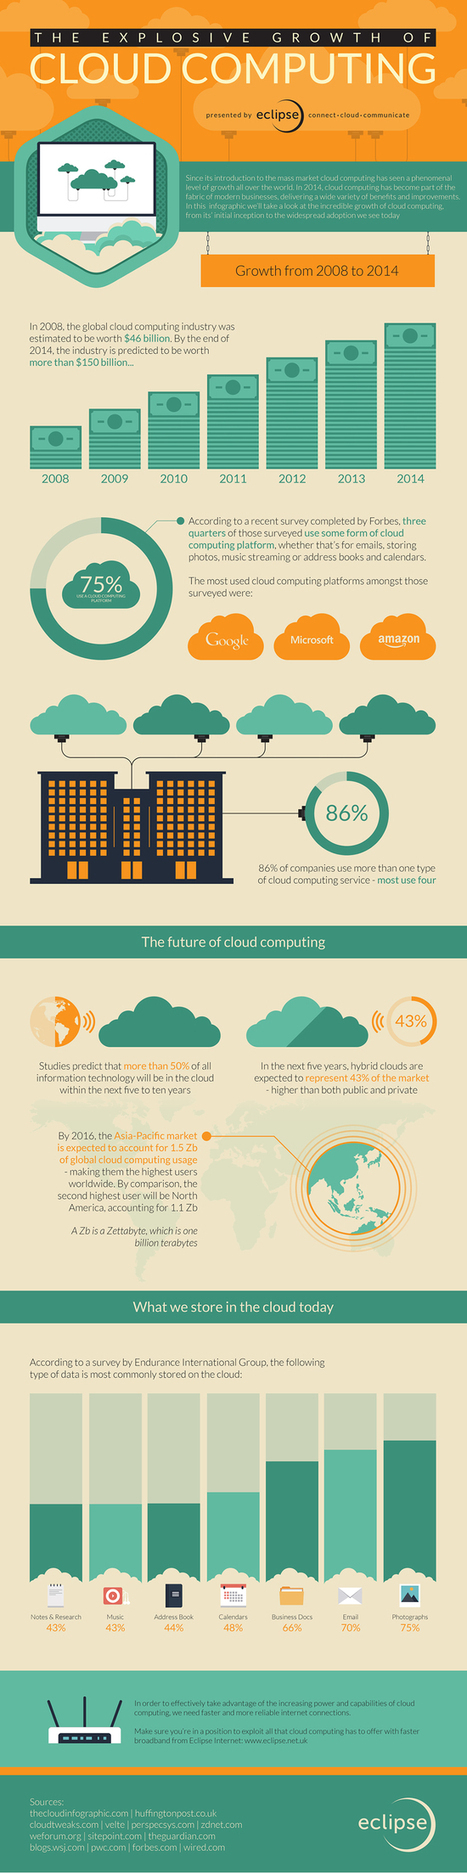 INFOGRAPHIC: The Explosive Growth of Cloud Computing | Cloud Central | Scoop.it